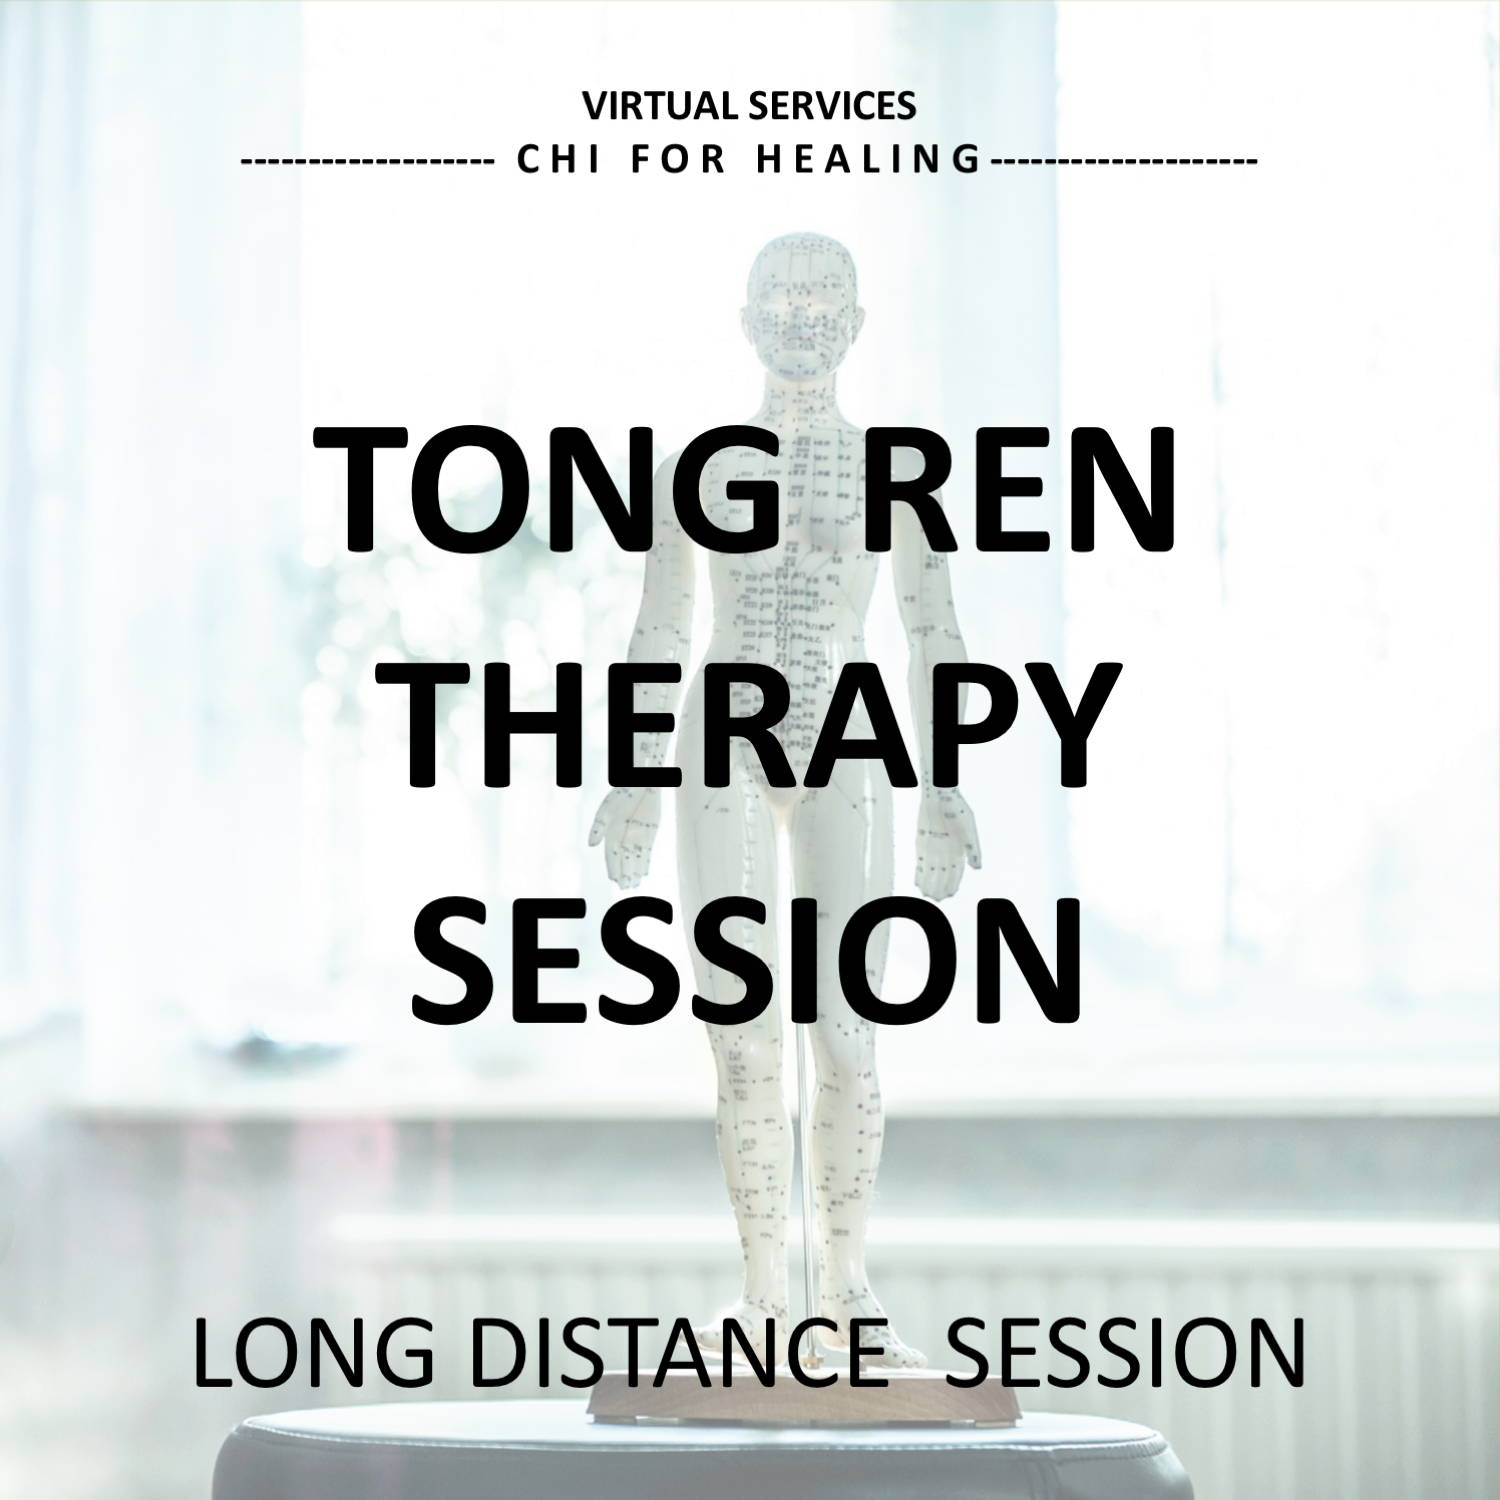 tong ren therapy session